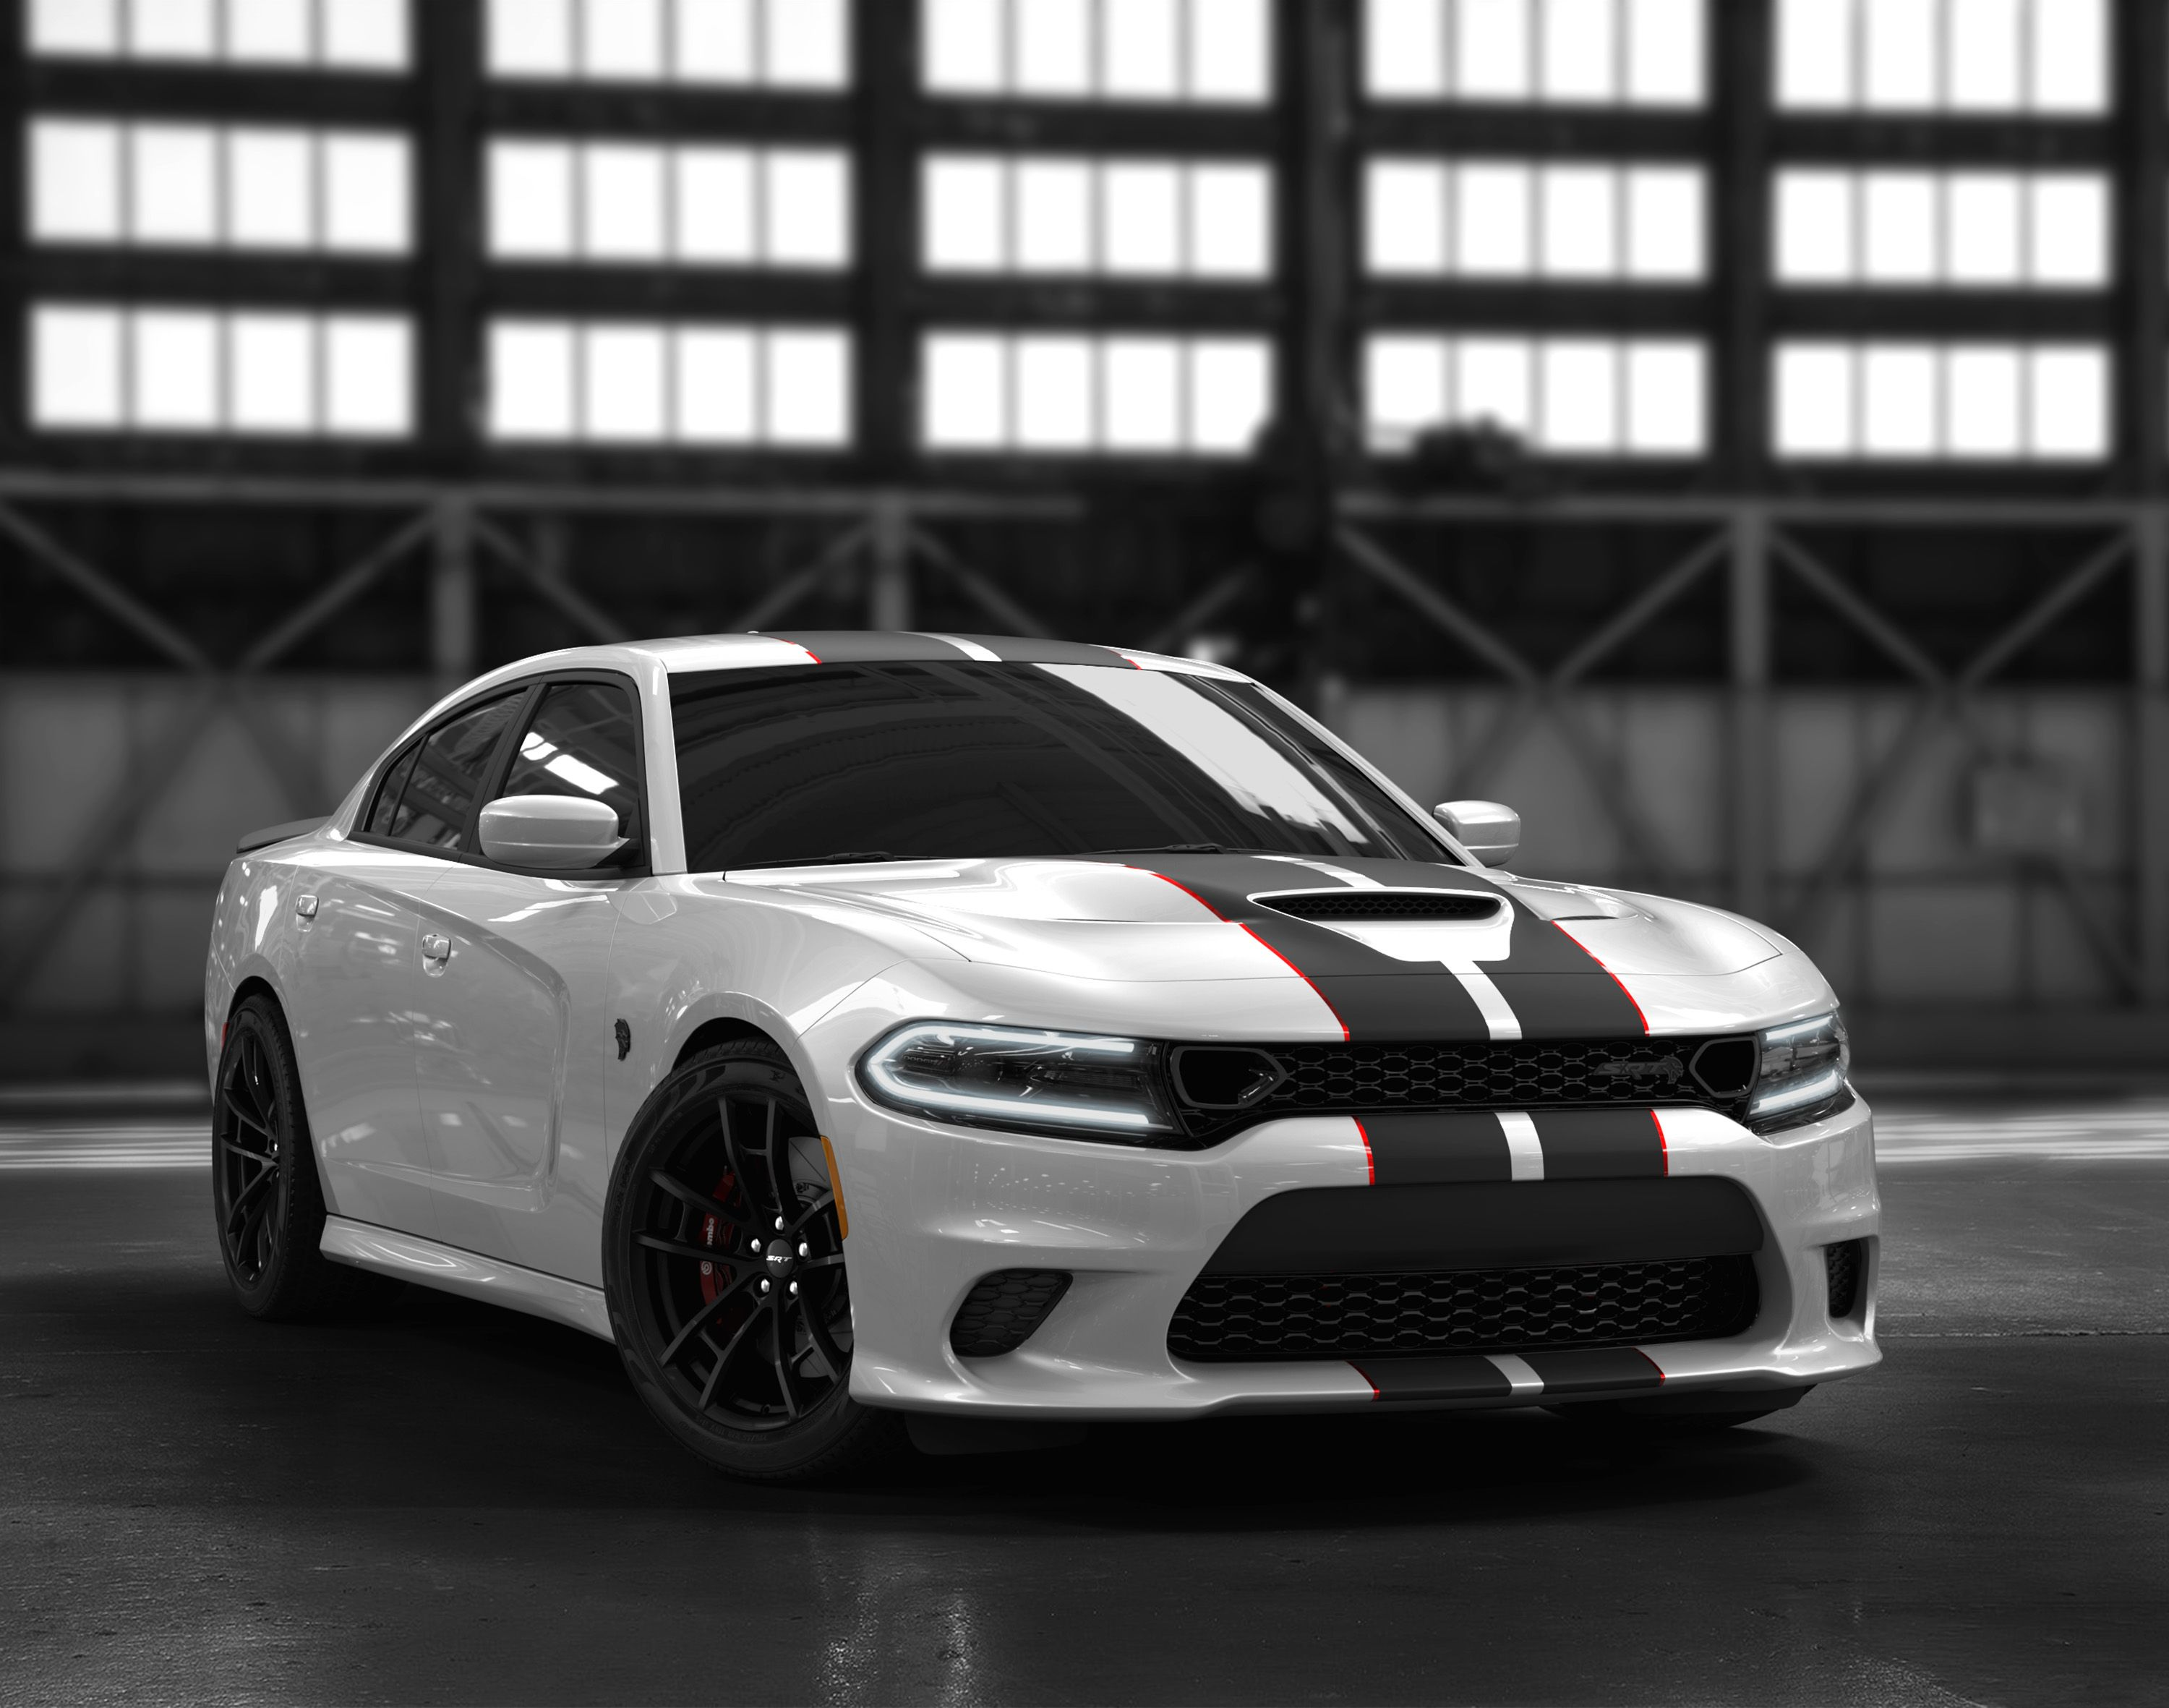 The 2019 Dodge Charger Srt Hellcat Adds The Aggressively Named Octane Edition